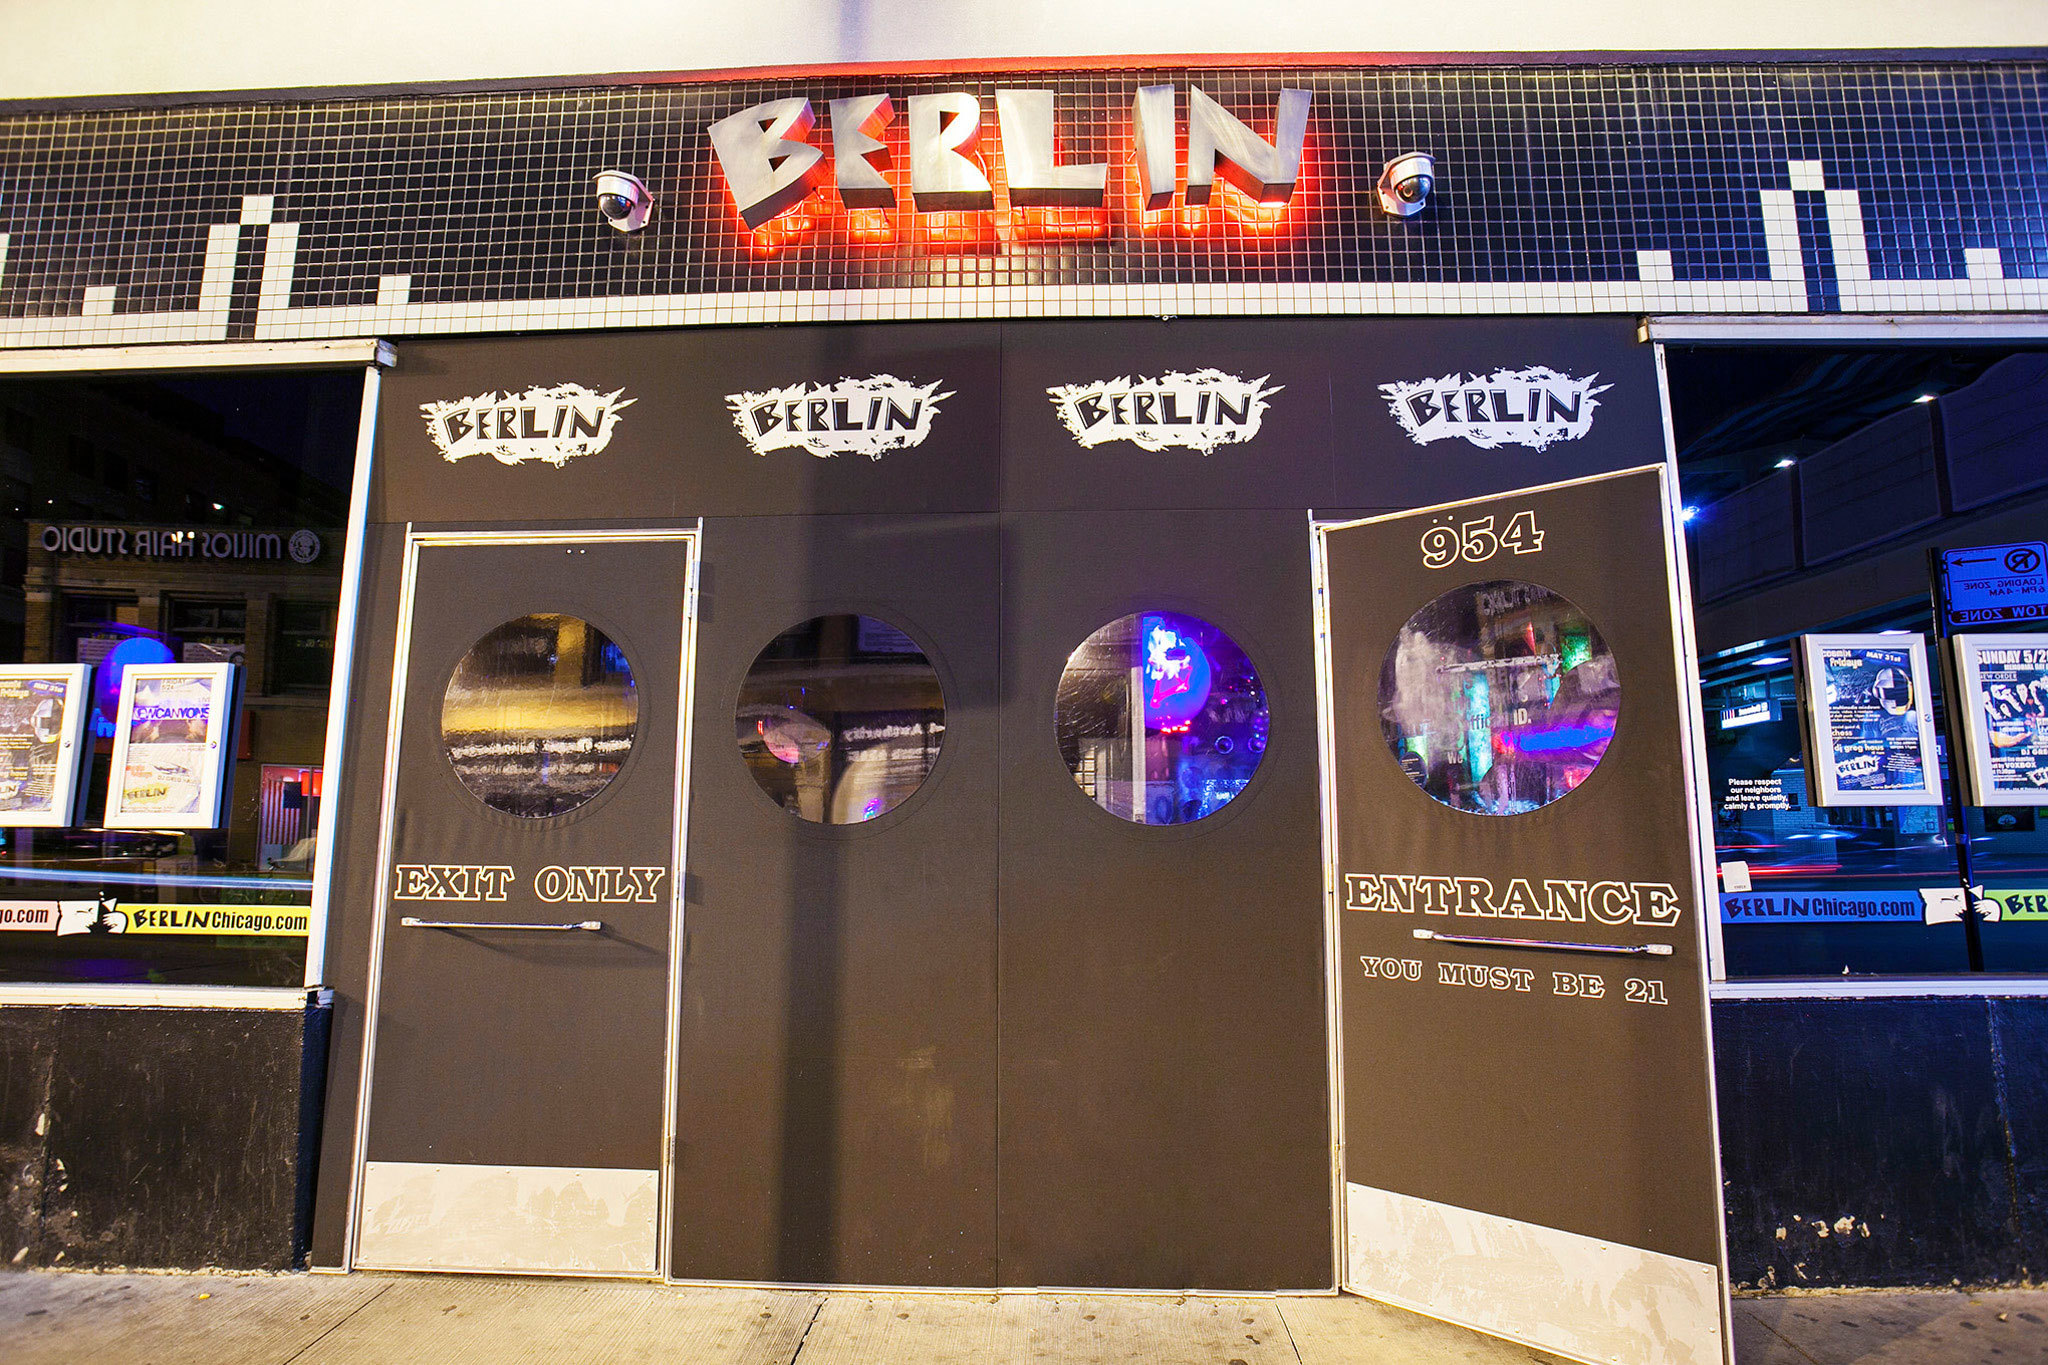 0513.chi.rb.at.Berlin.jpg